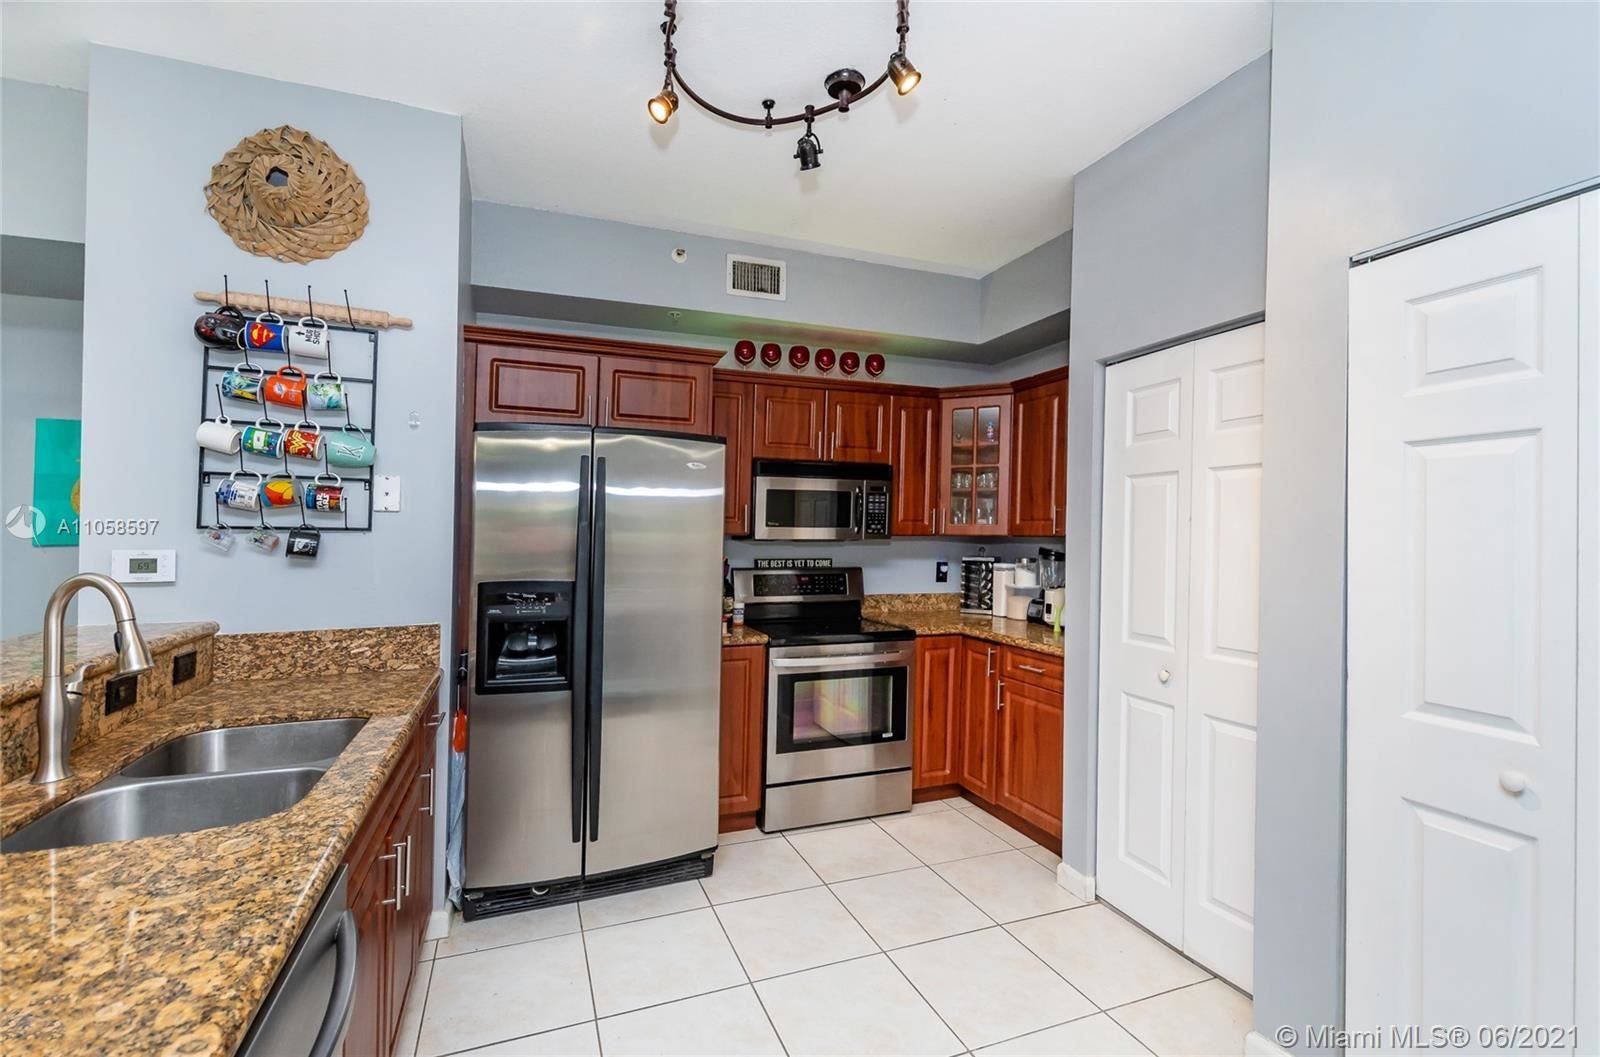 7230 NW 114th Ave #106, Doral, FL 33178 - #: A11058597